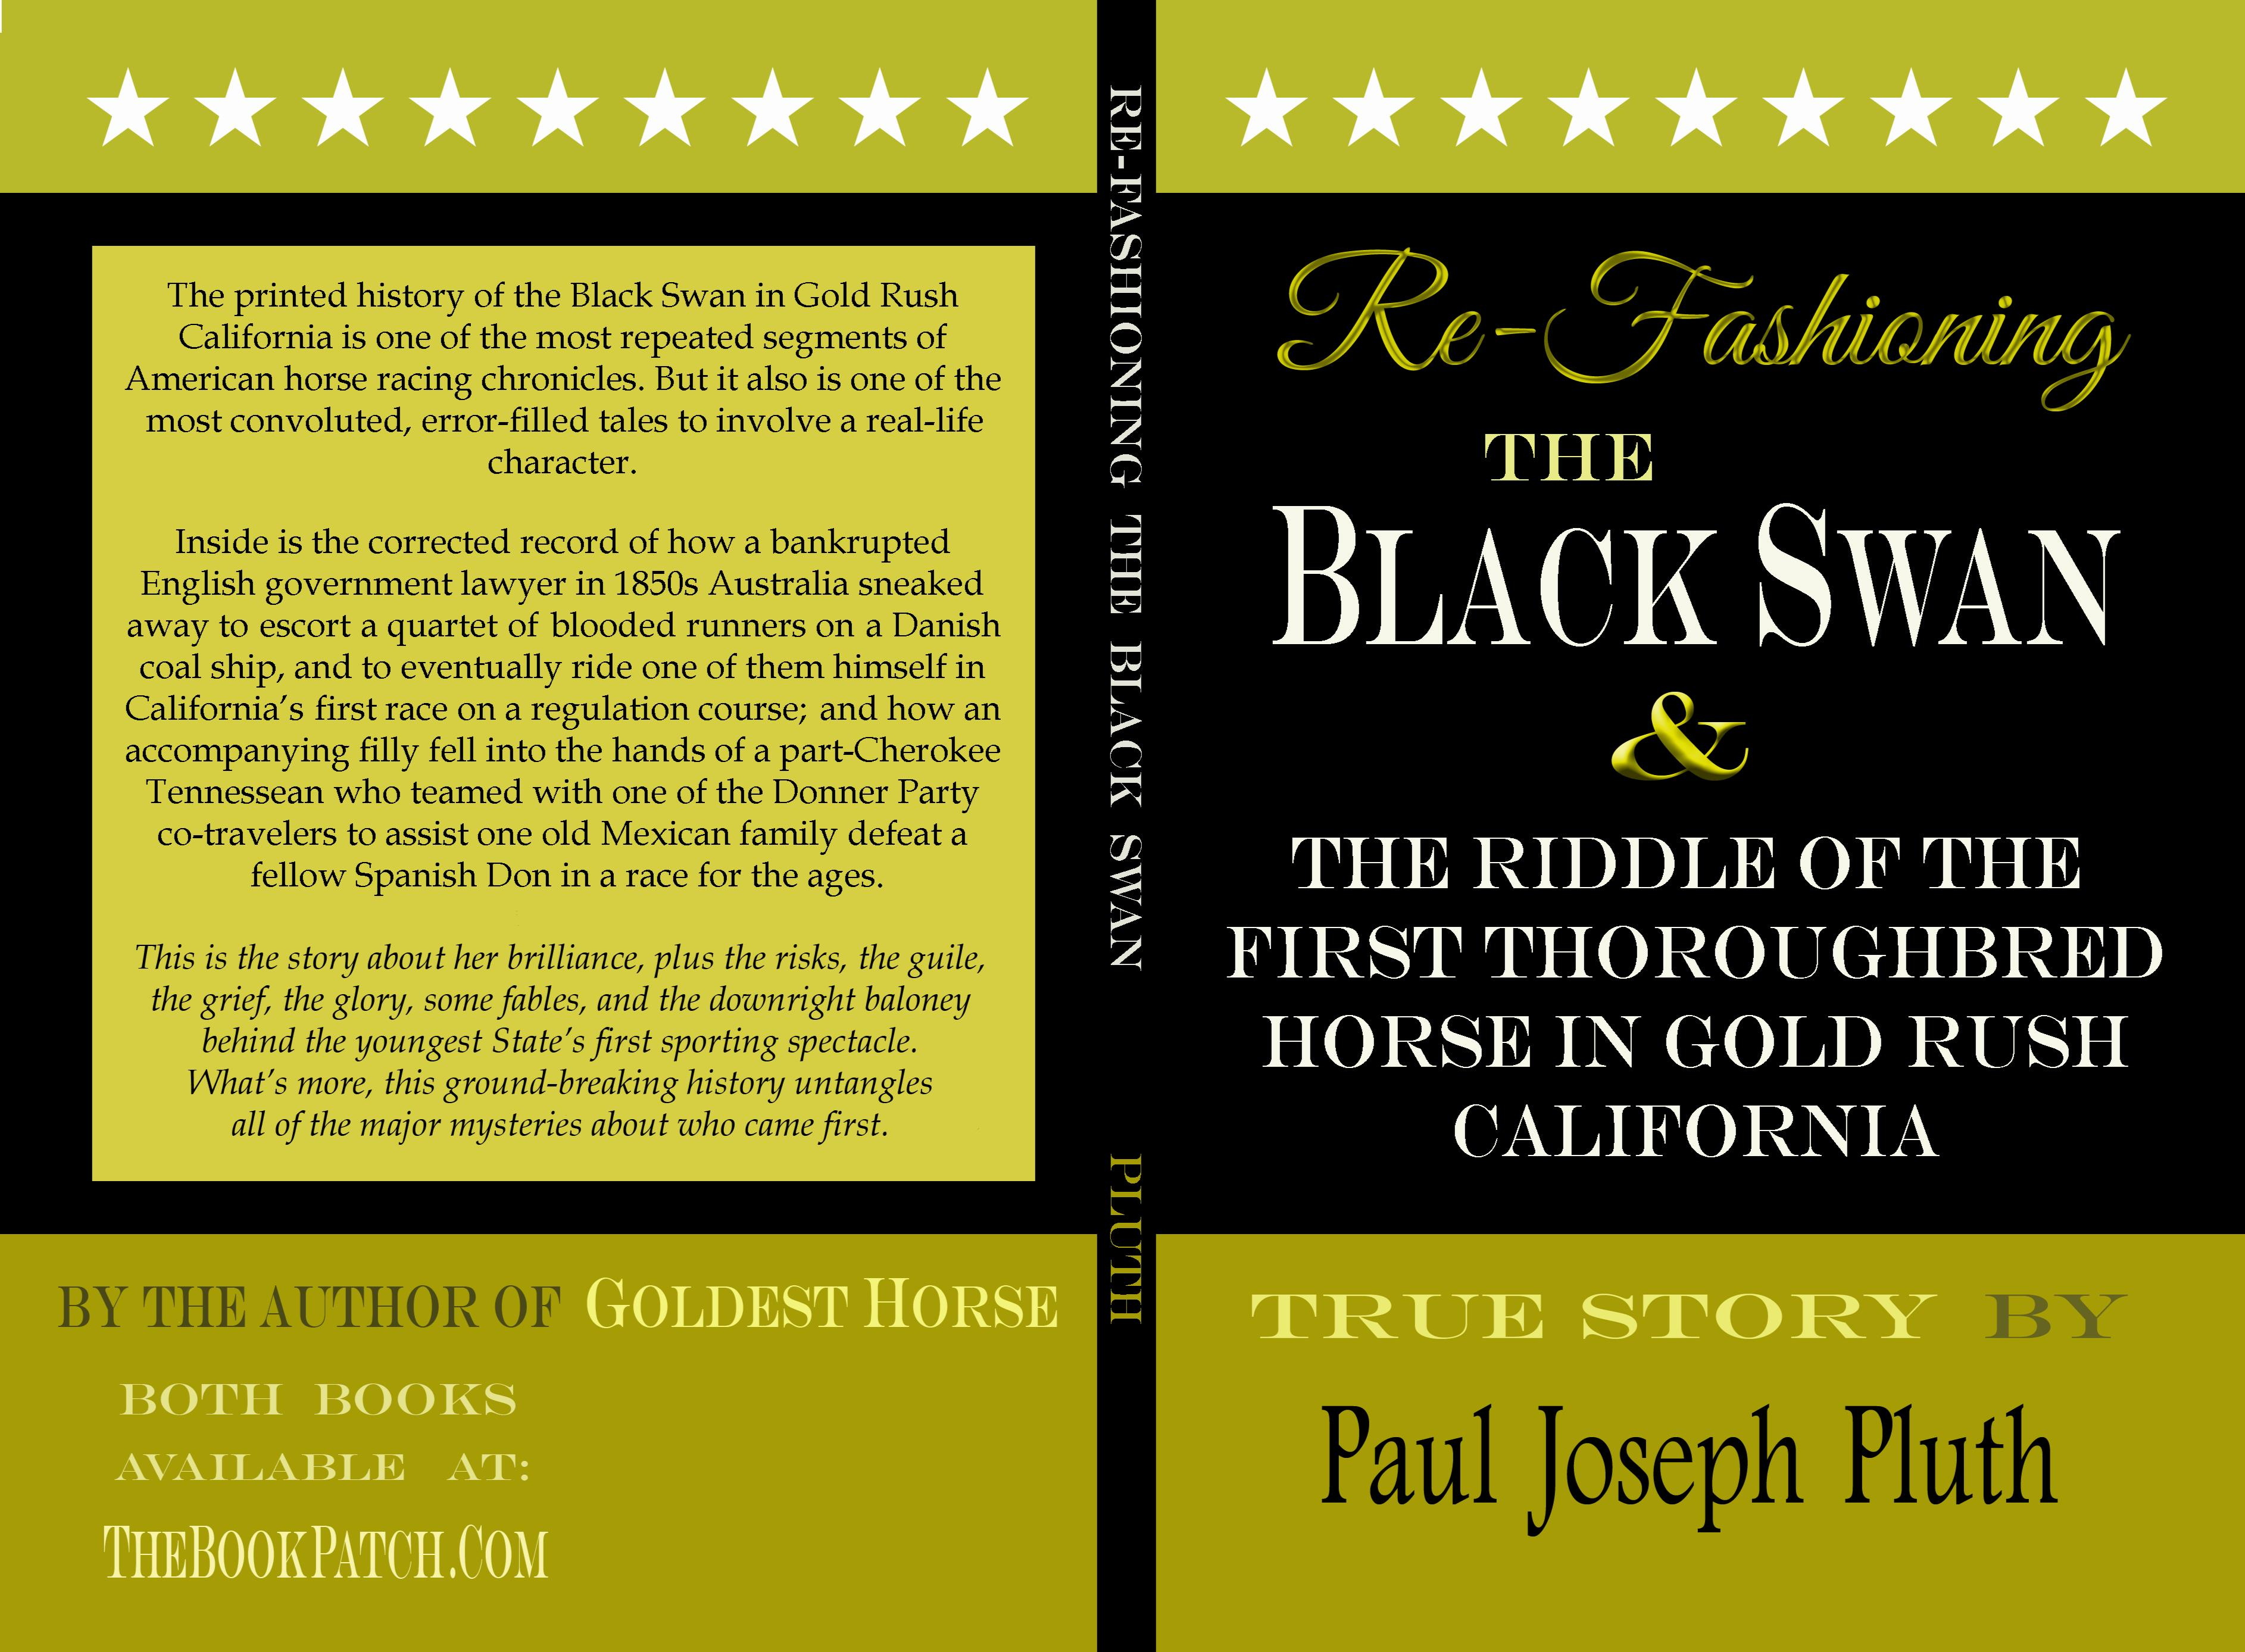 Re-Fashioning The Black Swan & The Riddle of the First Thoroughbred Horse in Gold Rush California cover image